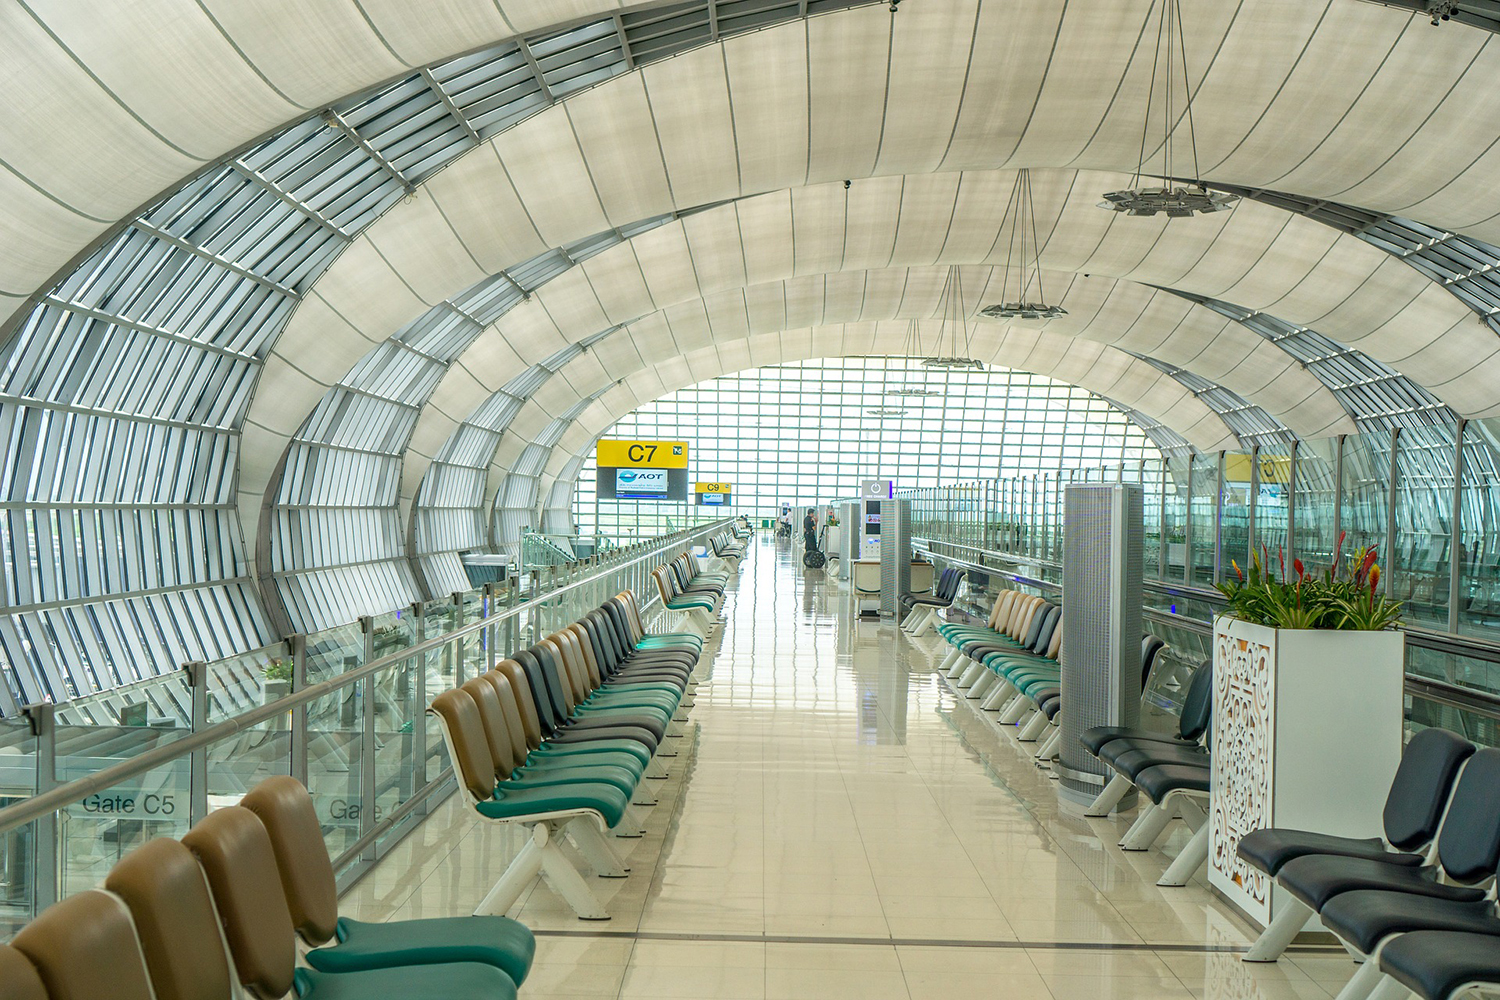 Don't Lose Focus: how the pandemic threatens aviation security